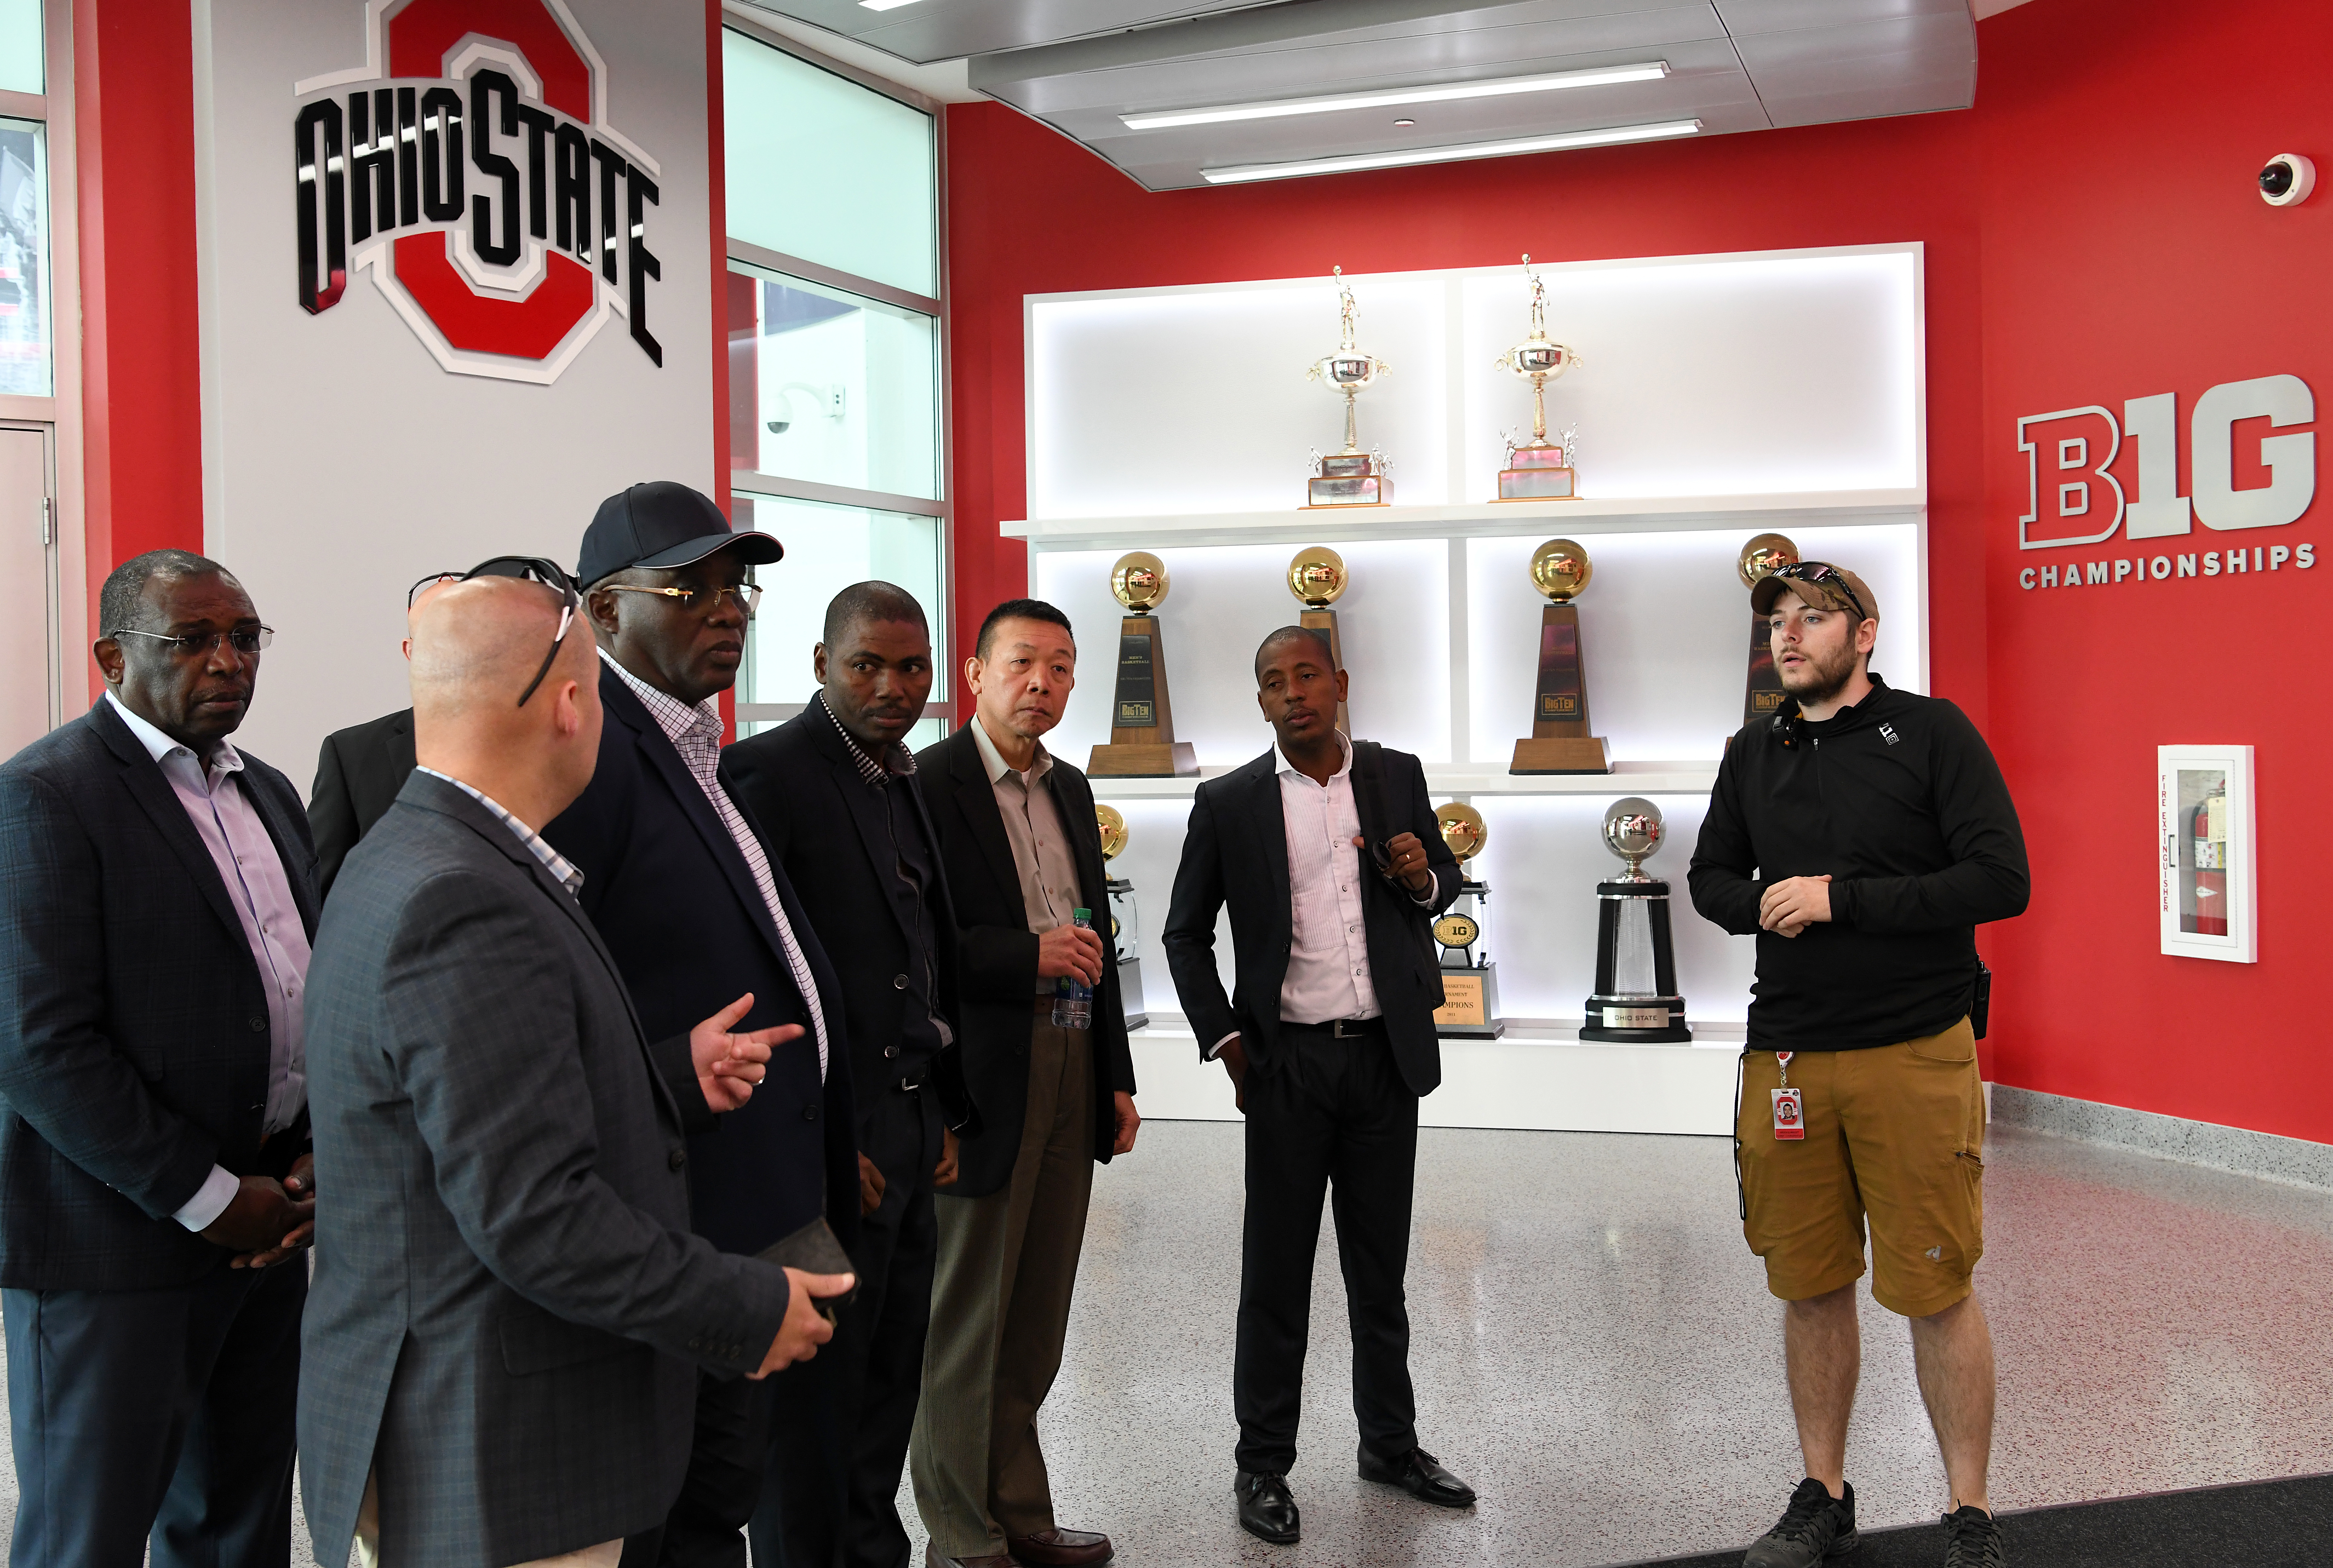 U.S. service members and an Angolan Armed Forces delegation tour The Ohio State University Schottenstein Center during an official visit to Ohio from Gen. Jaques Raul, Angolan Armed Forces deputy land forces commander, June 4, 2019, in Columbus, Ohio. The visit enabled the sharing of military best practices, encouraged cross-nation cultural understanding and promoted the development of professional relationships.